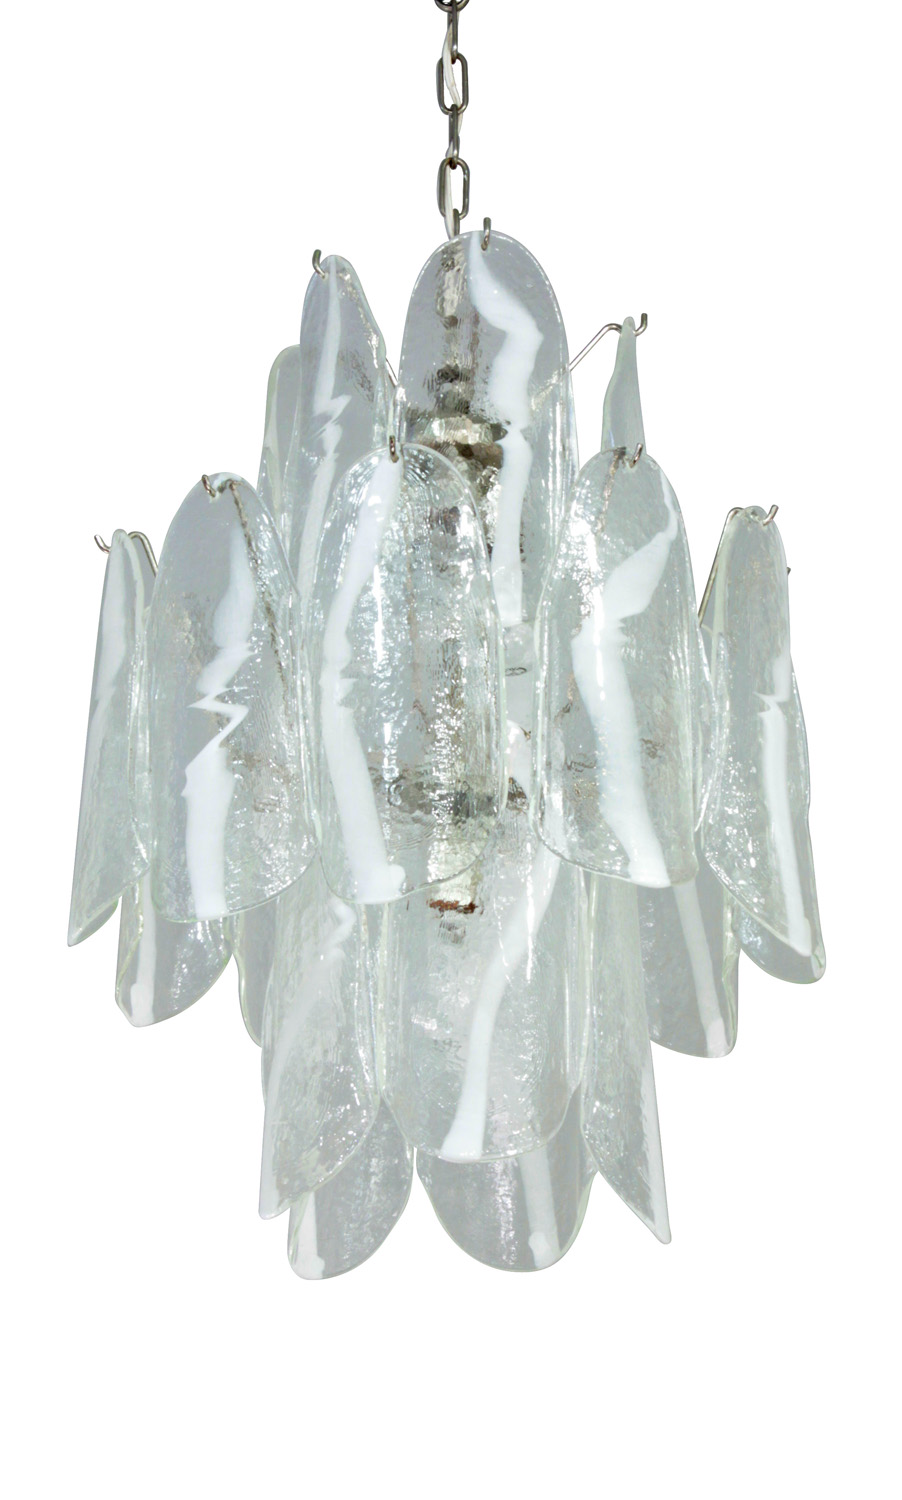 Mazzega 65 clear+white fasce chandelier196 detail1 hires.jpg